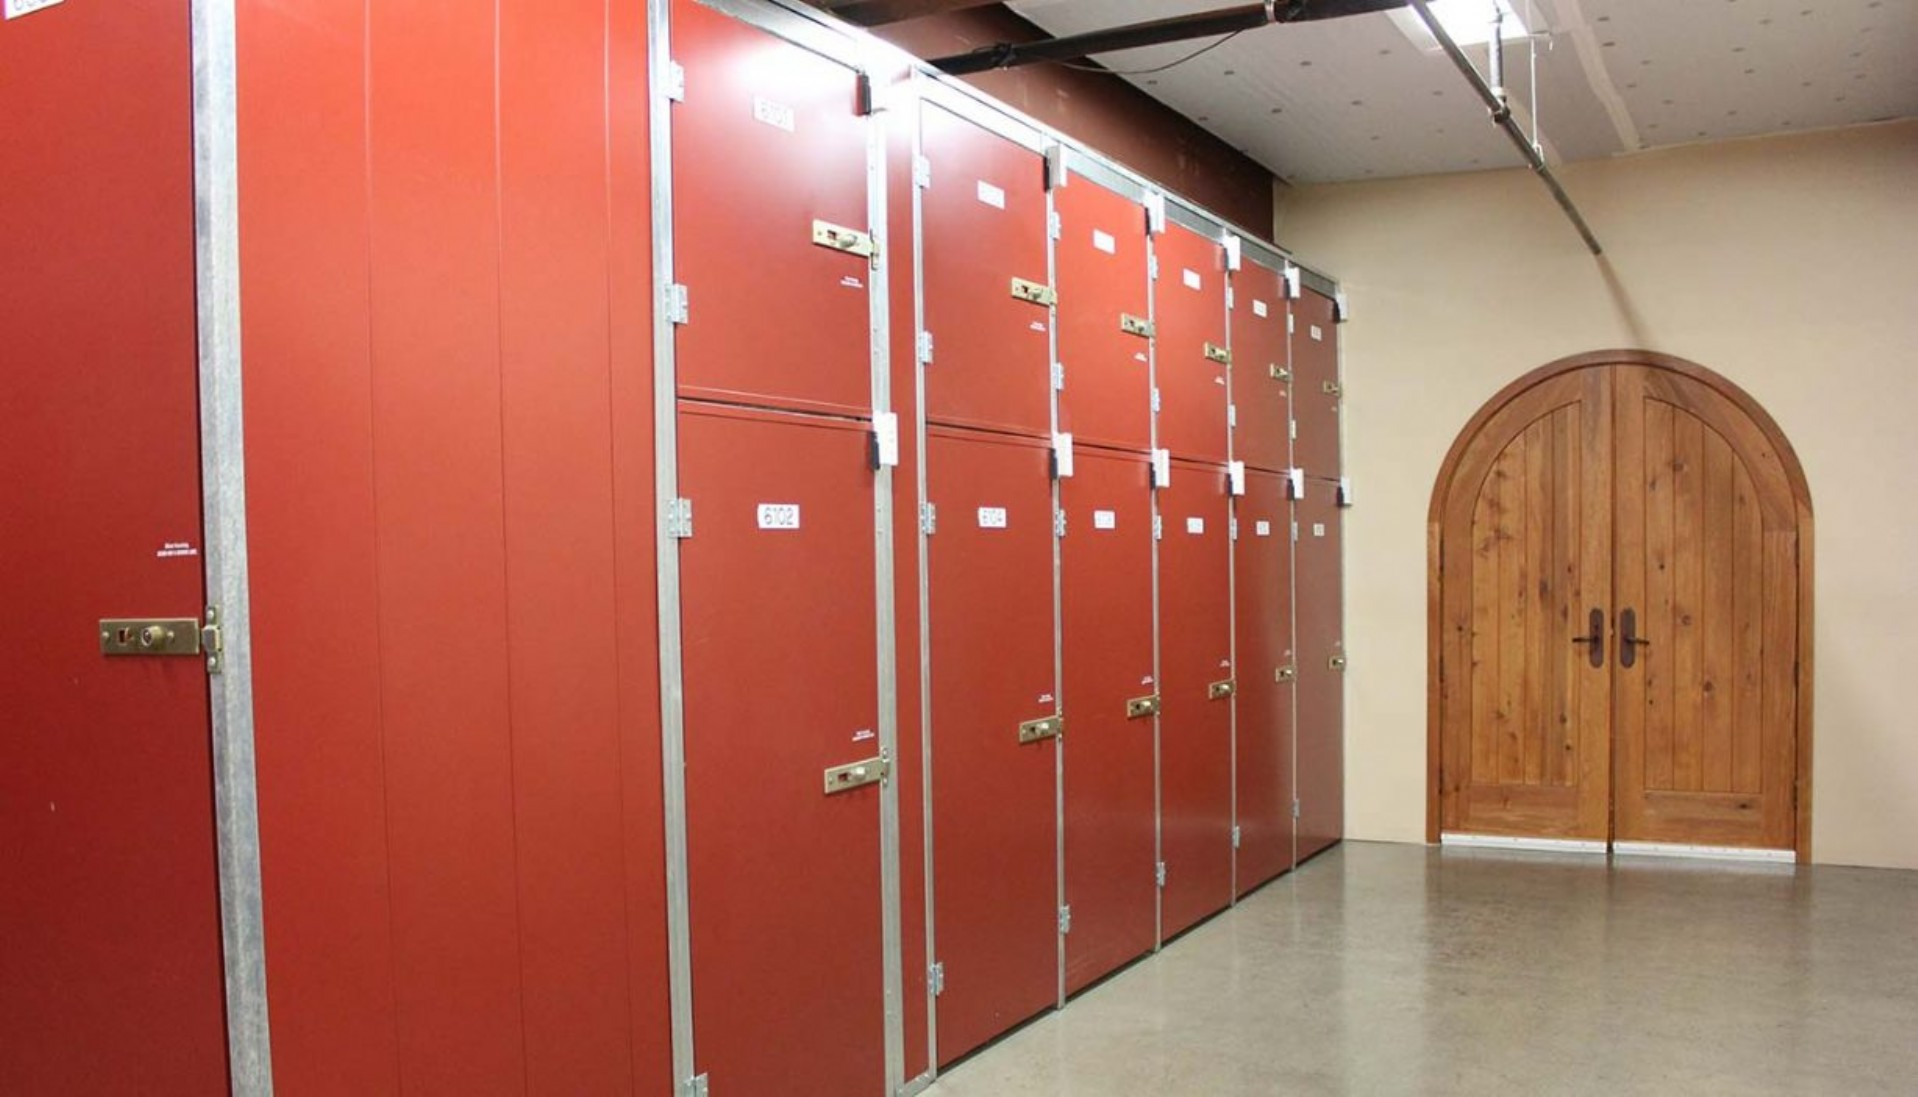 Various size wine storage lockers near wine cellar entrance door